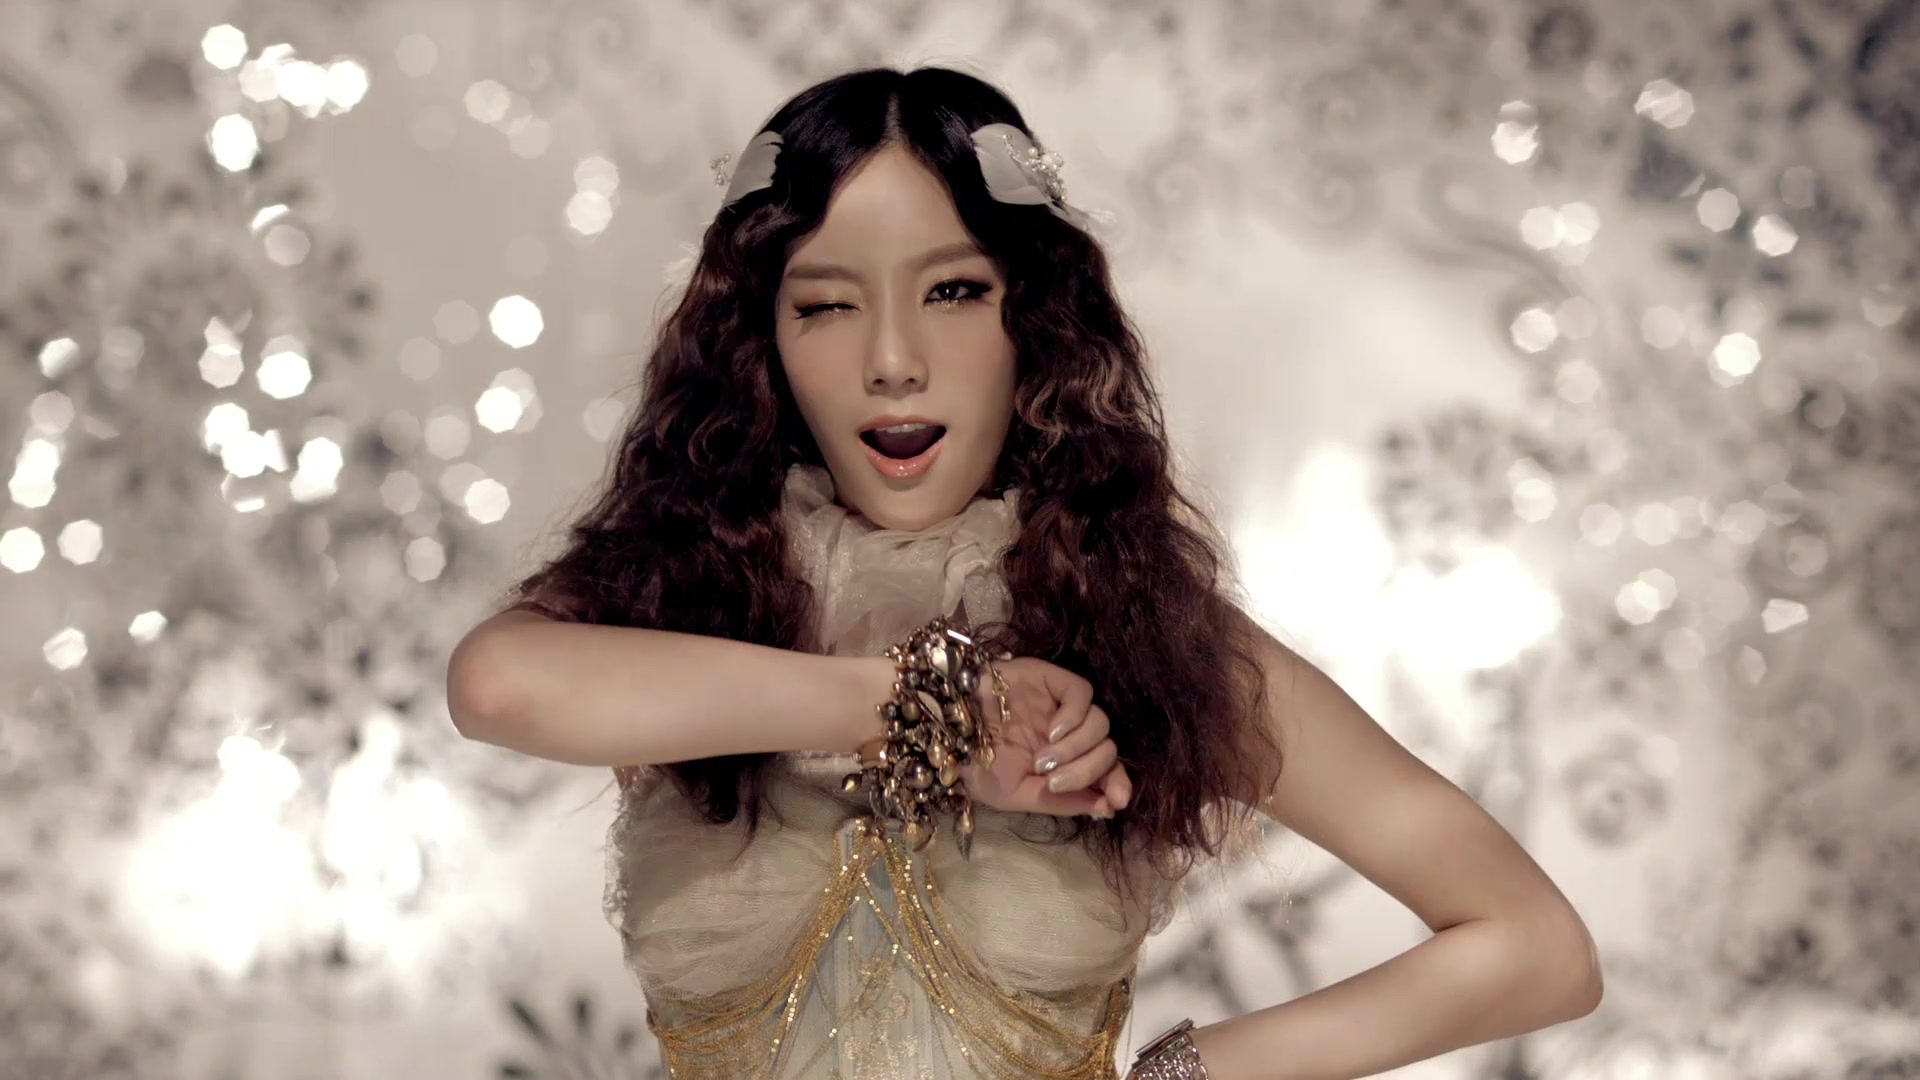 Taeyeon - The Boys mv - S♥NEISM Image (27080609) - Fanpop Taeyeon The Boys